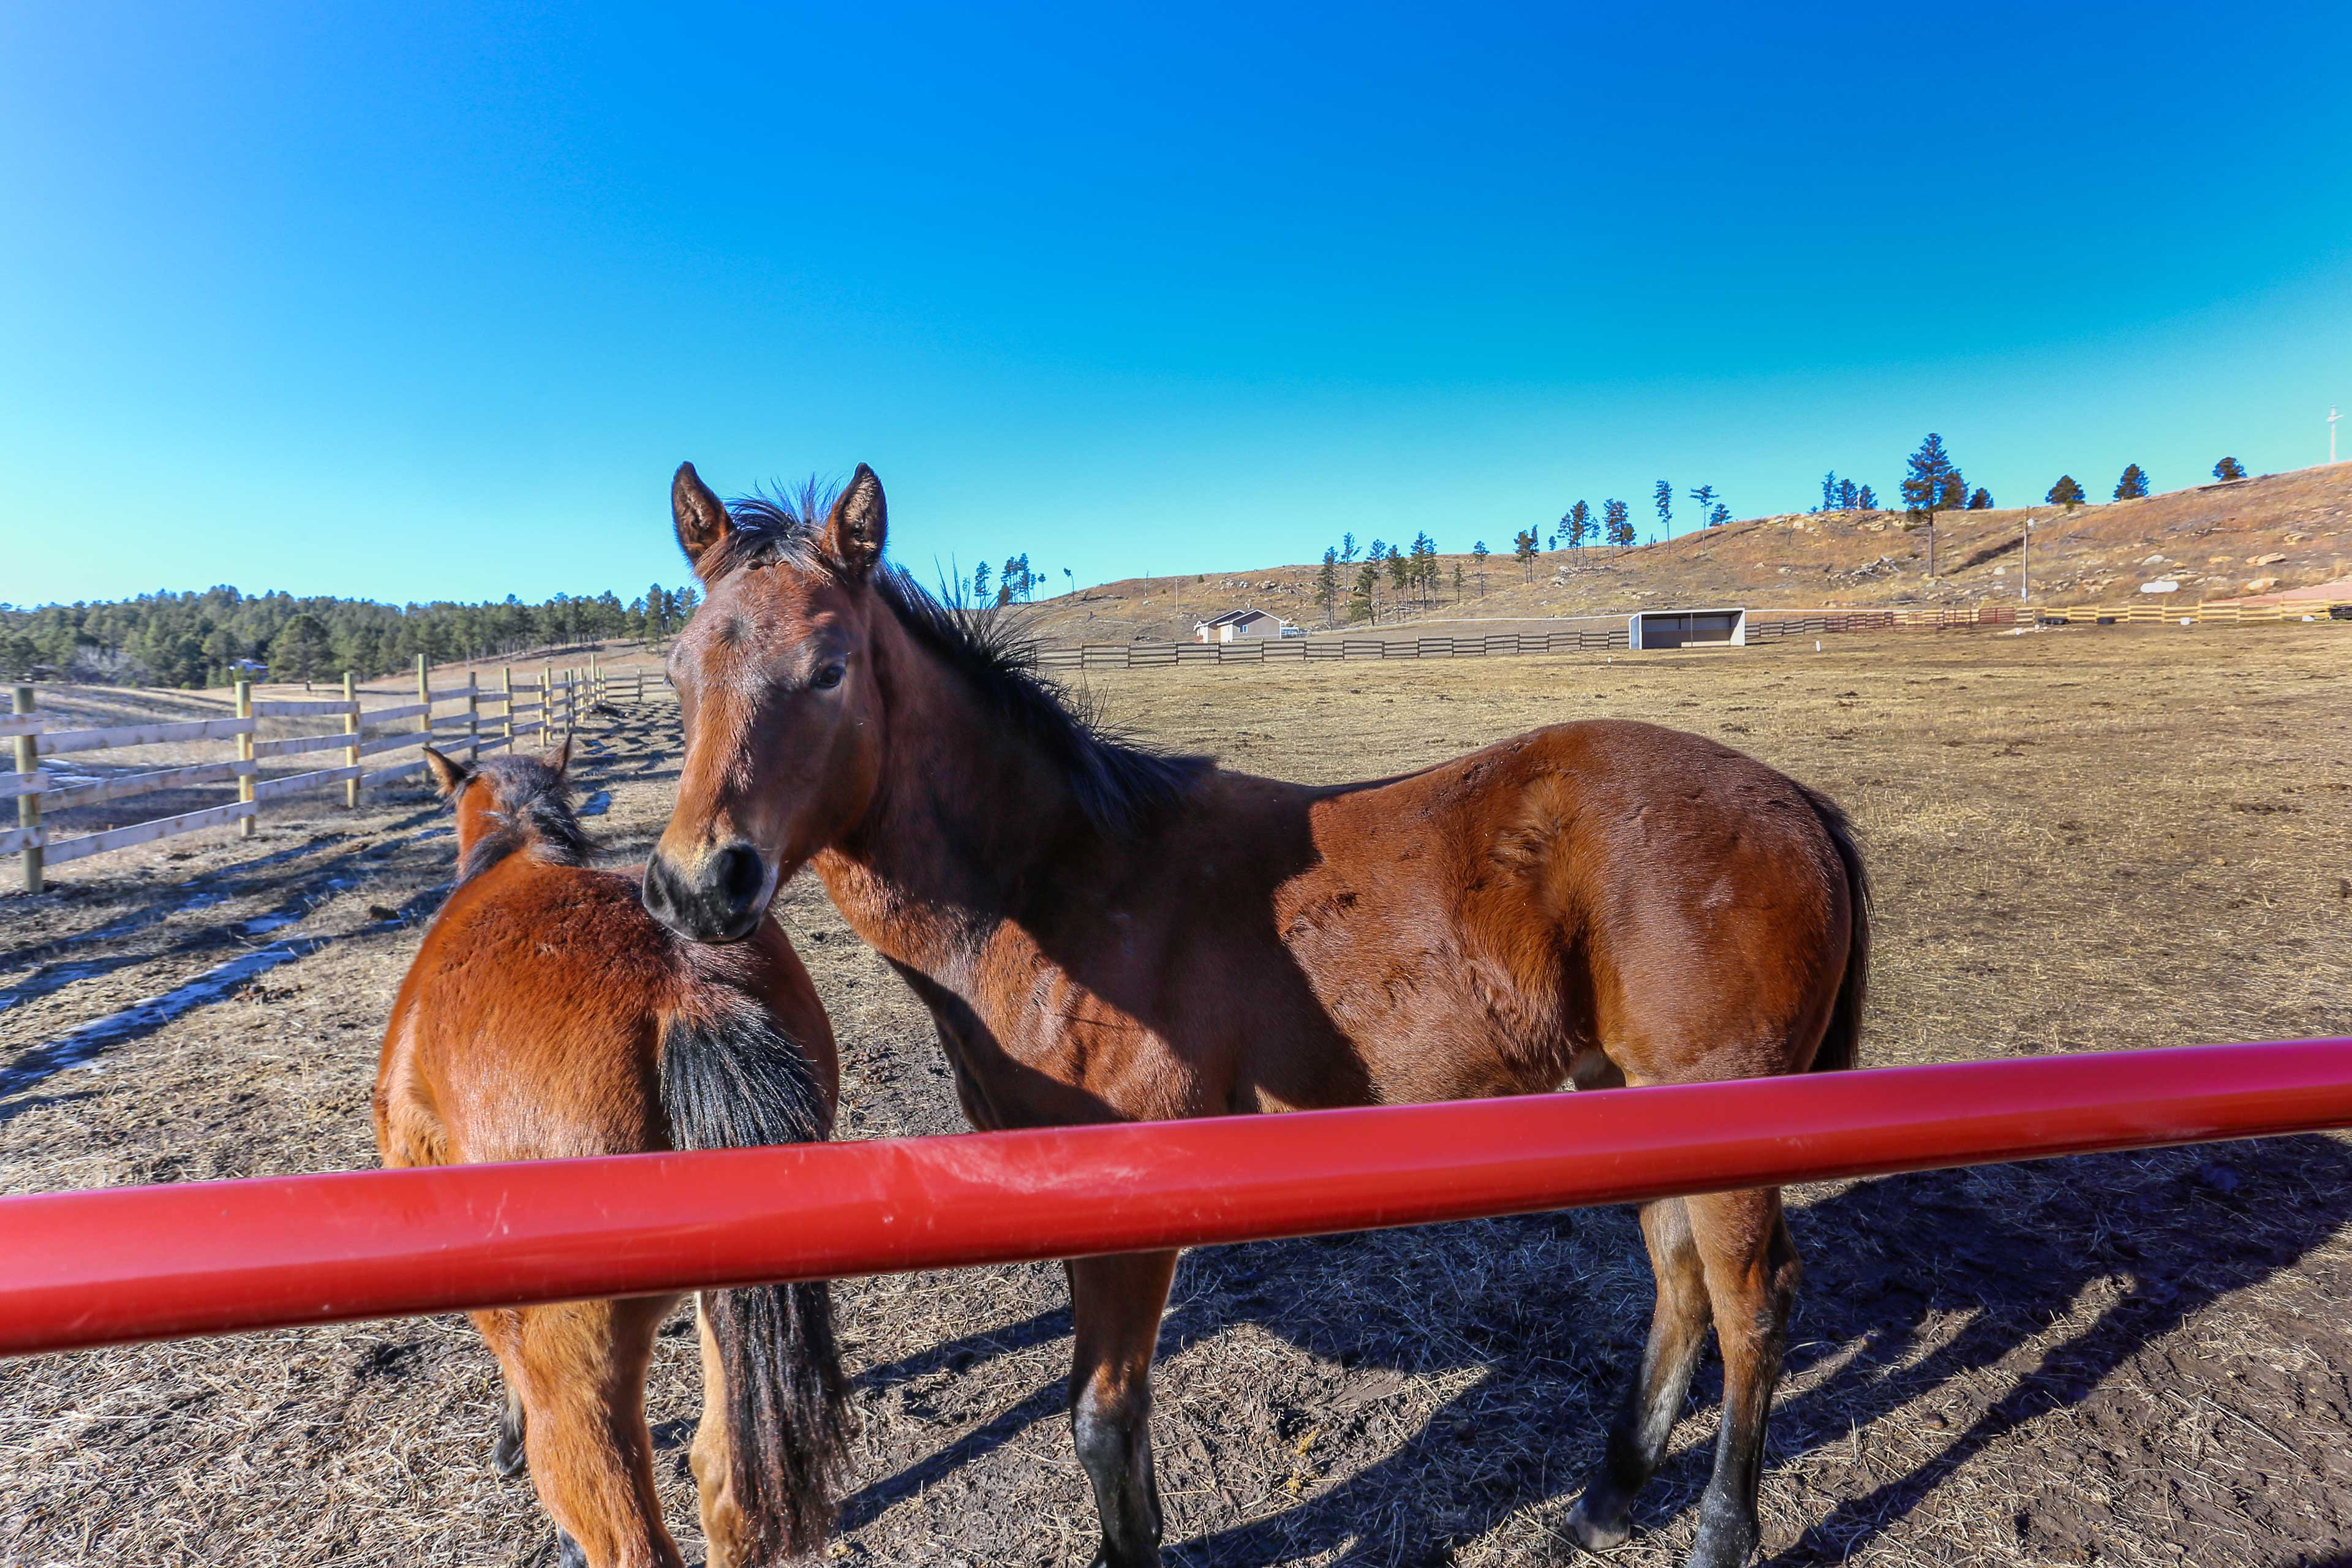 You'll drive by these friendly horses on your way to the cabin.